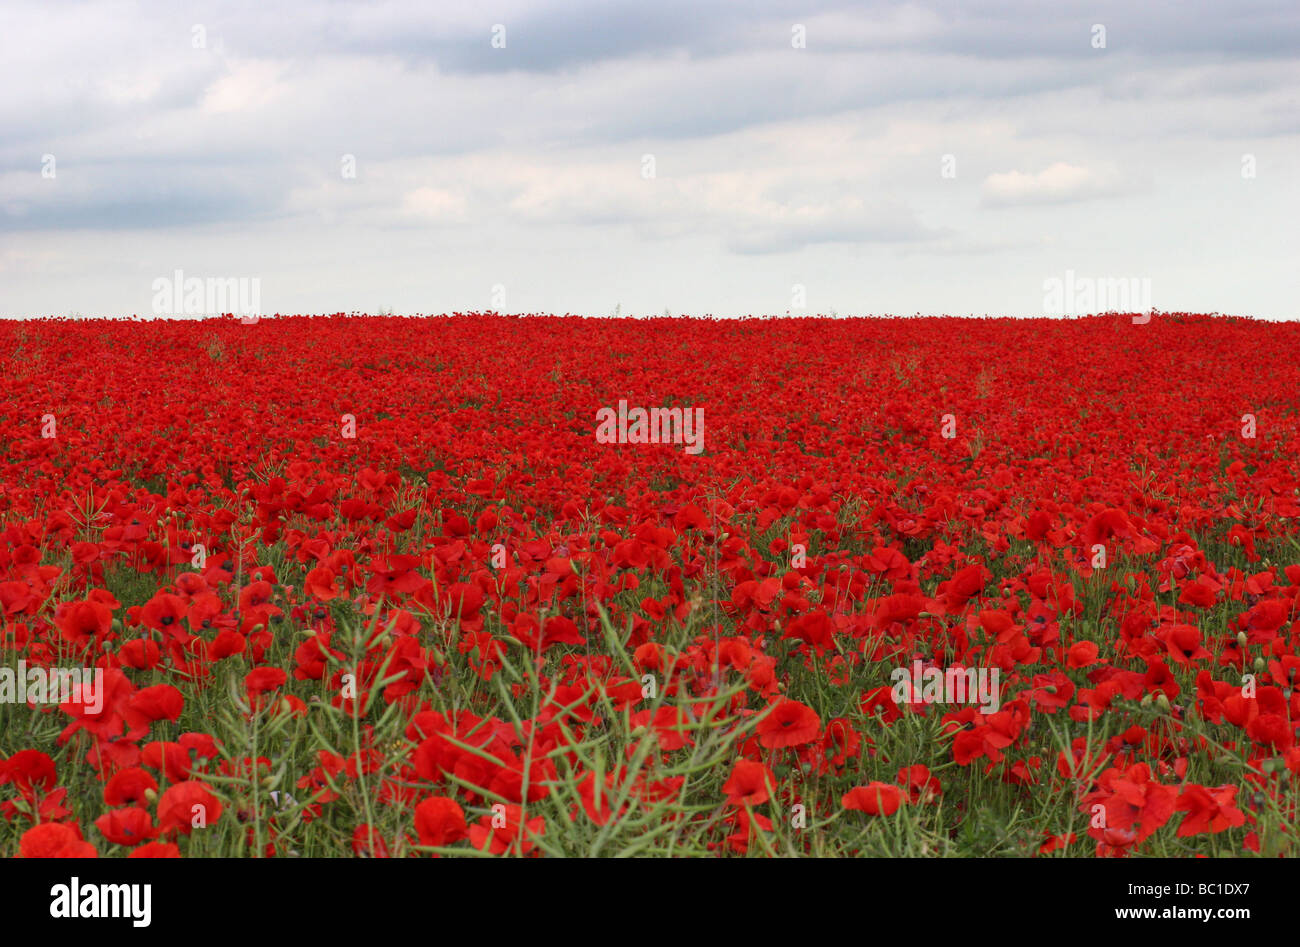 Poppy field - Stock Image